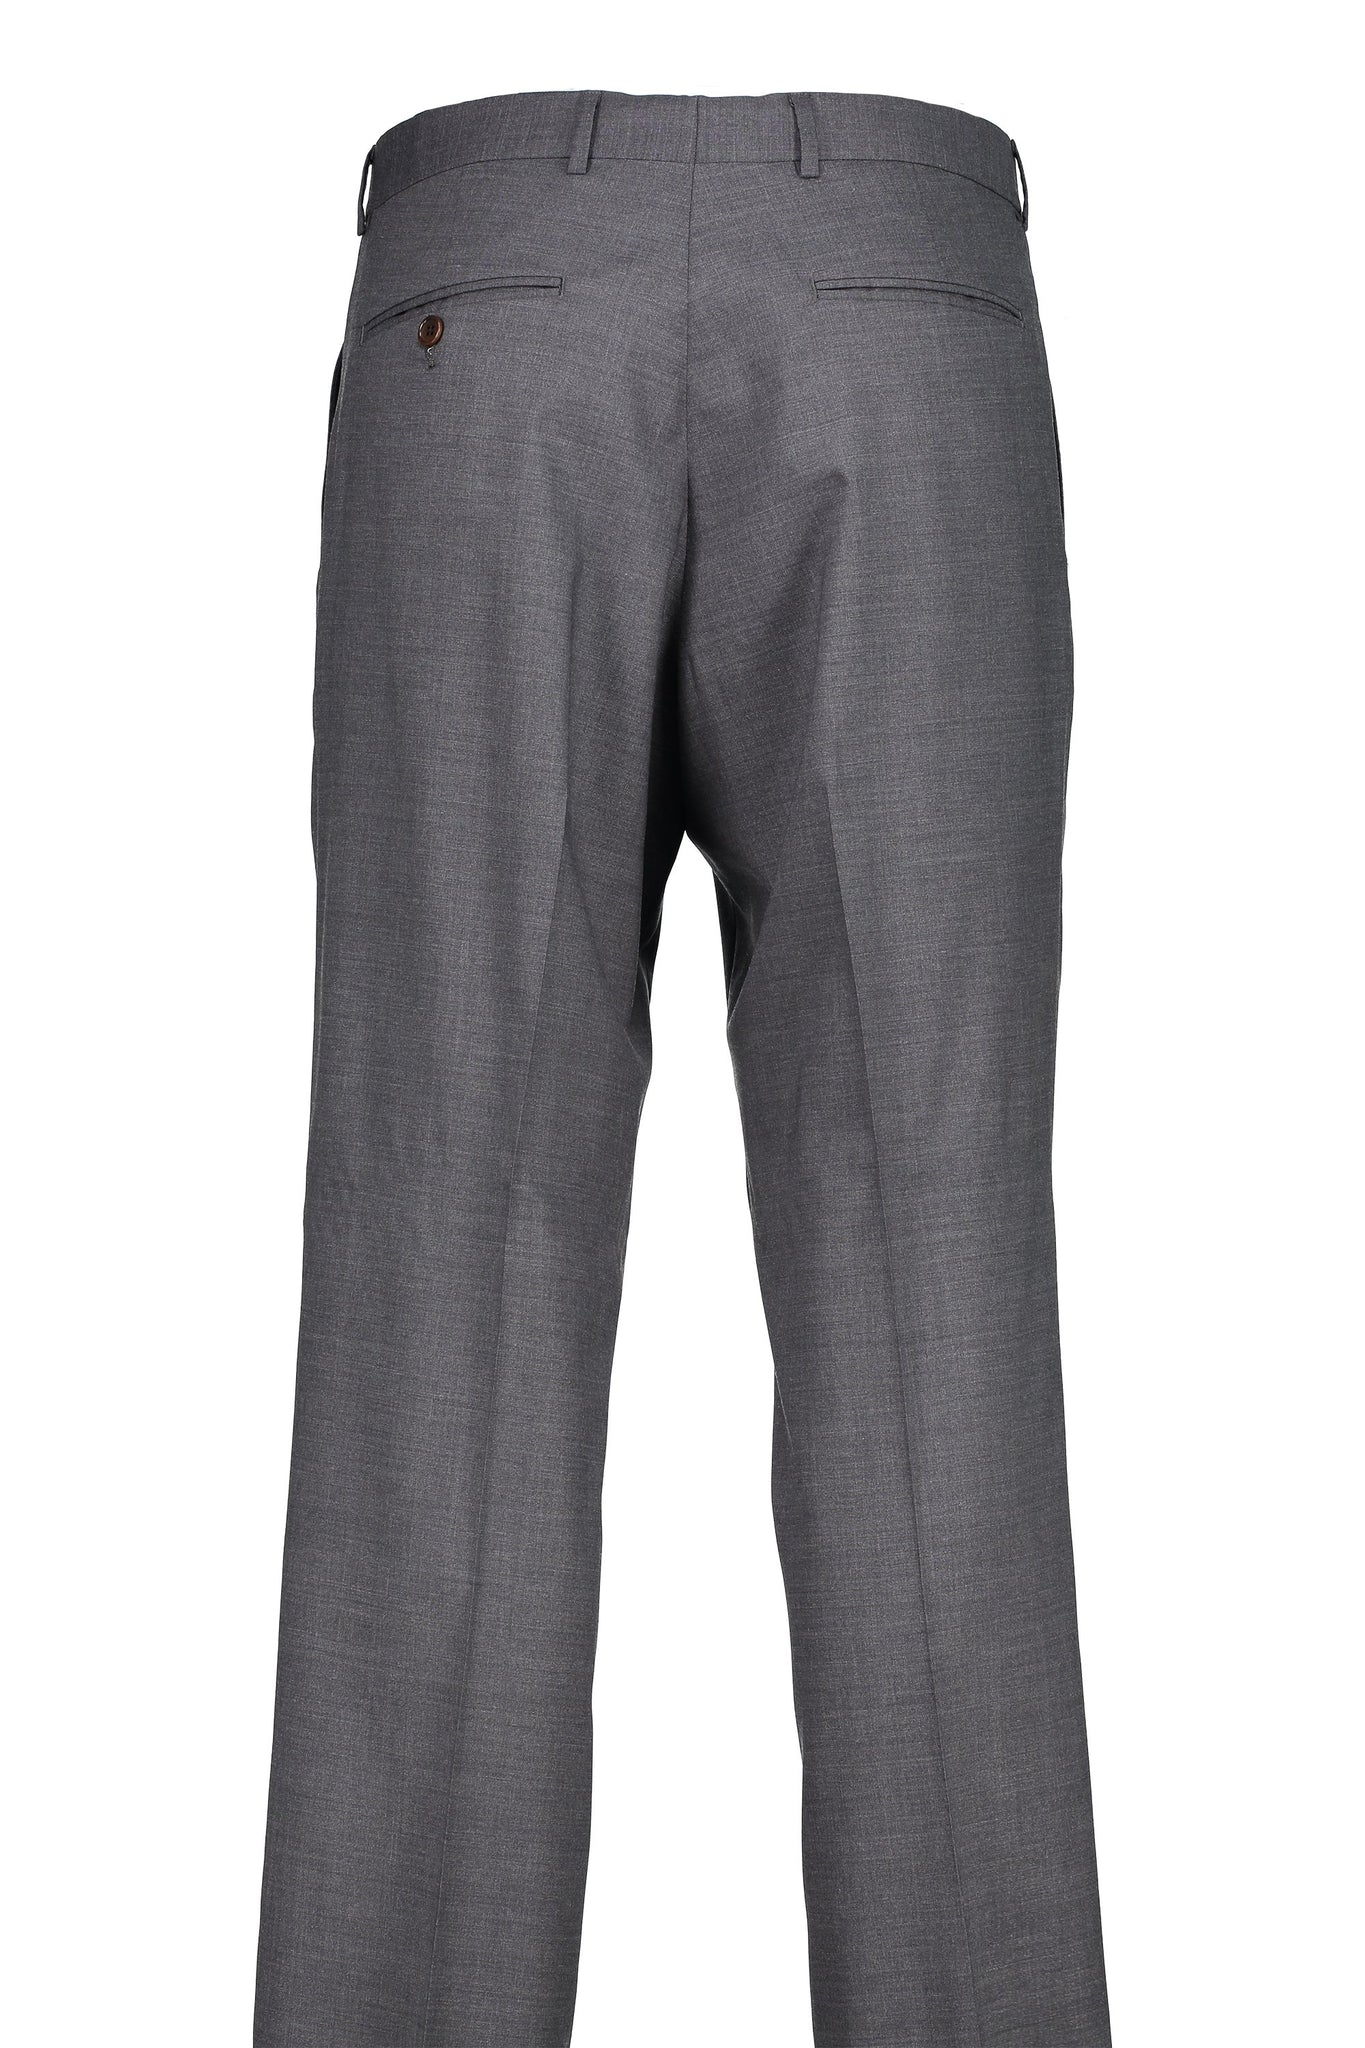 Classic Fit Grey H-Tech Wool Suit Separate Flat Front Pant -  Hardwick.com